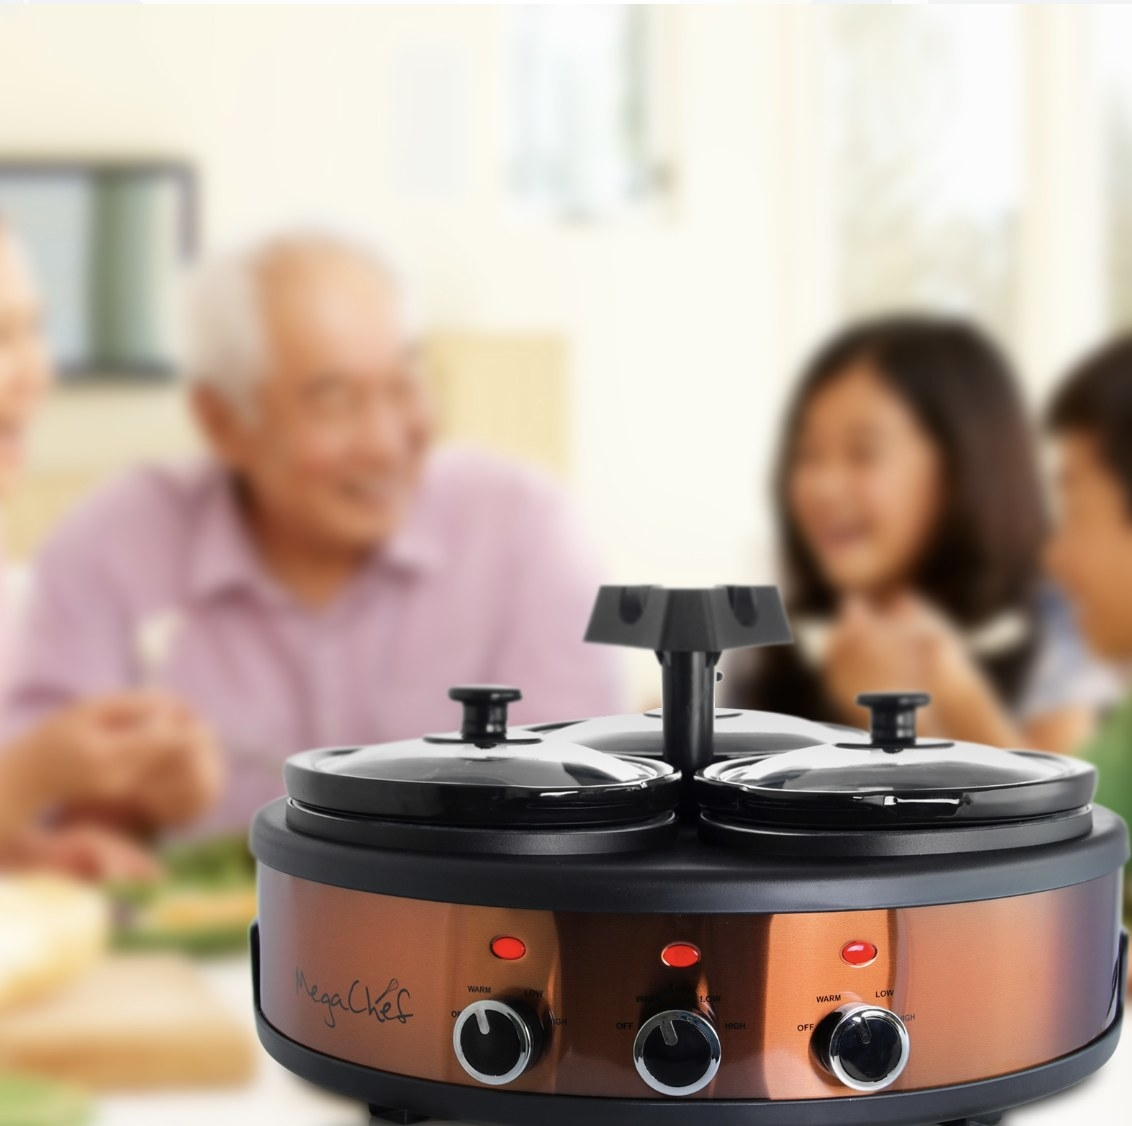 The slow cooker is a copper and black color and there is a group of young and old people laughing in the background